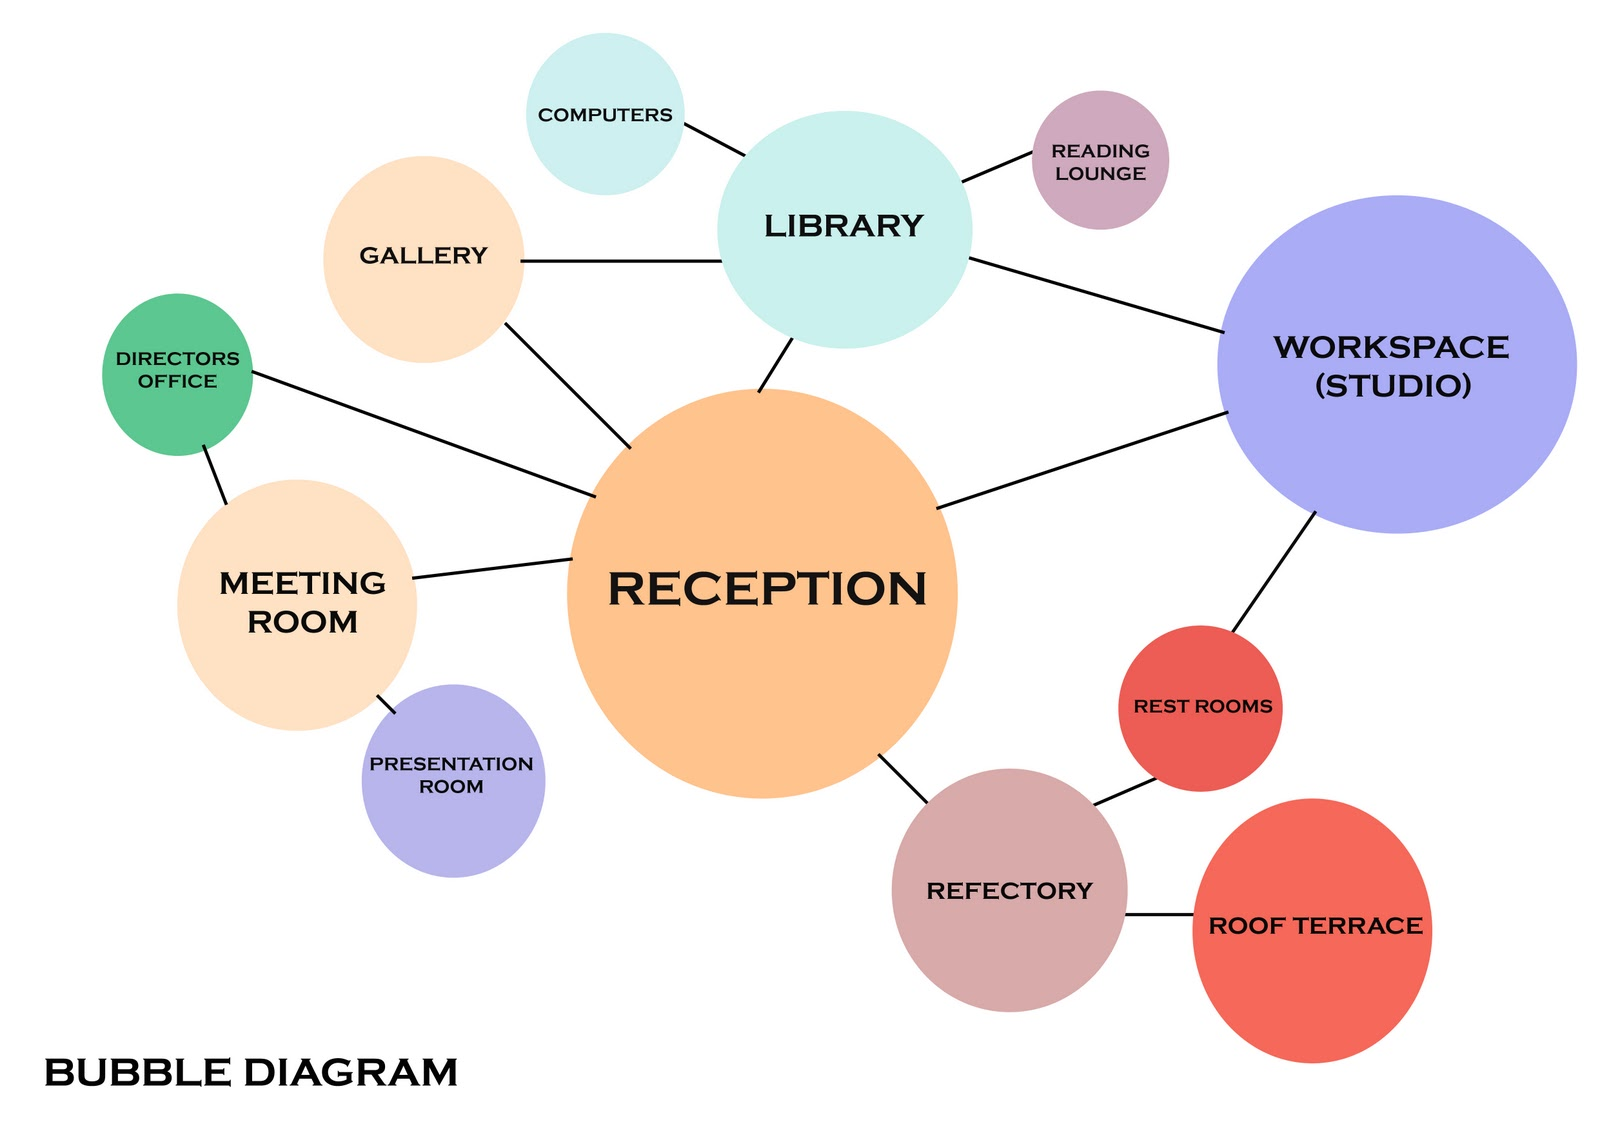 medium resolution of our bubble diagrams working on space planning